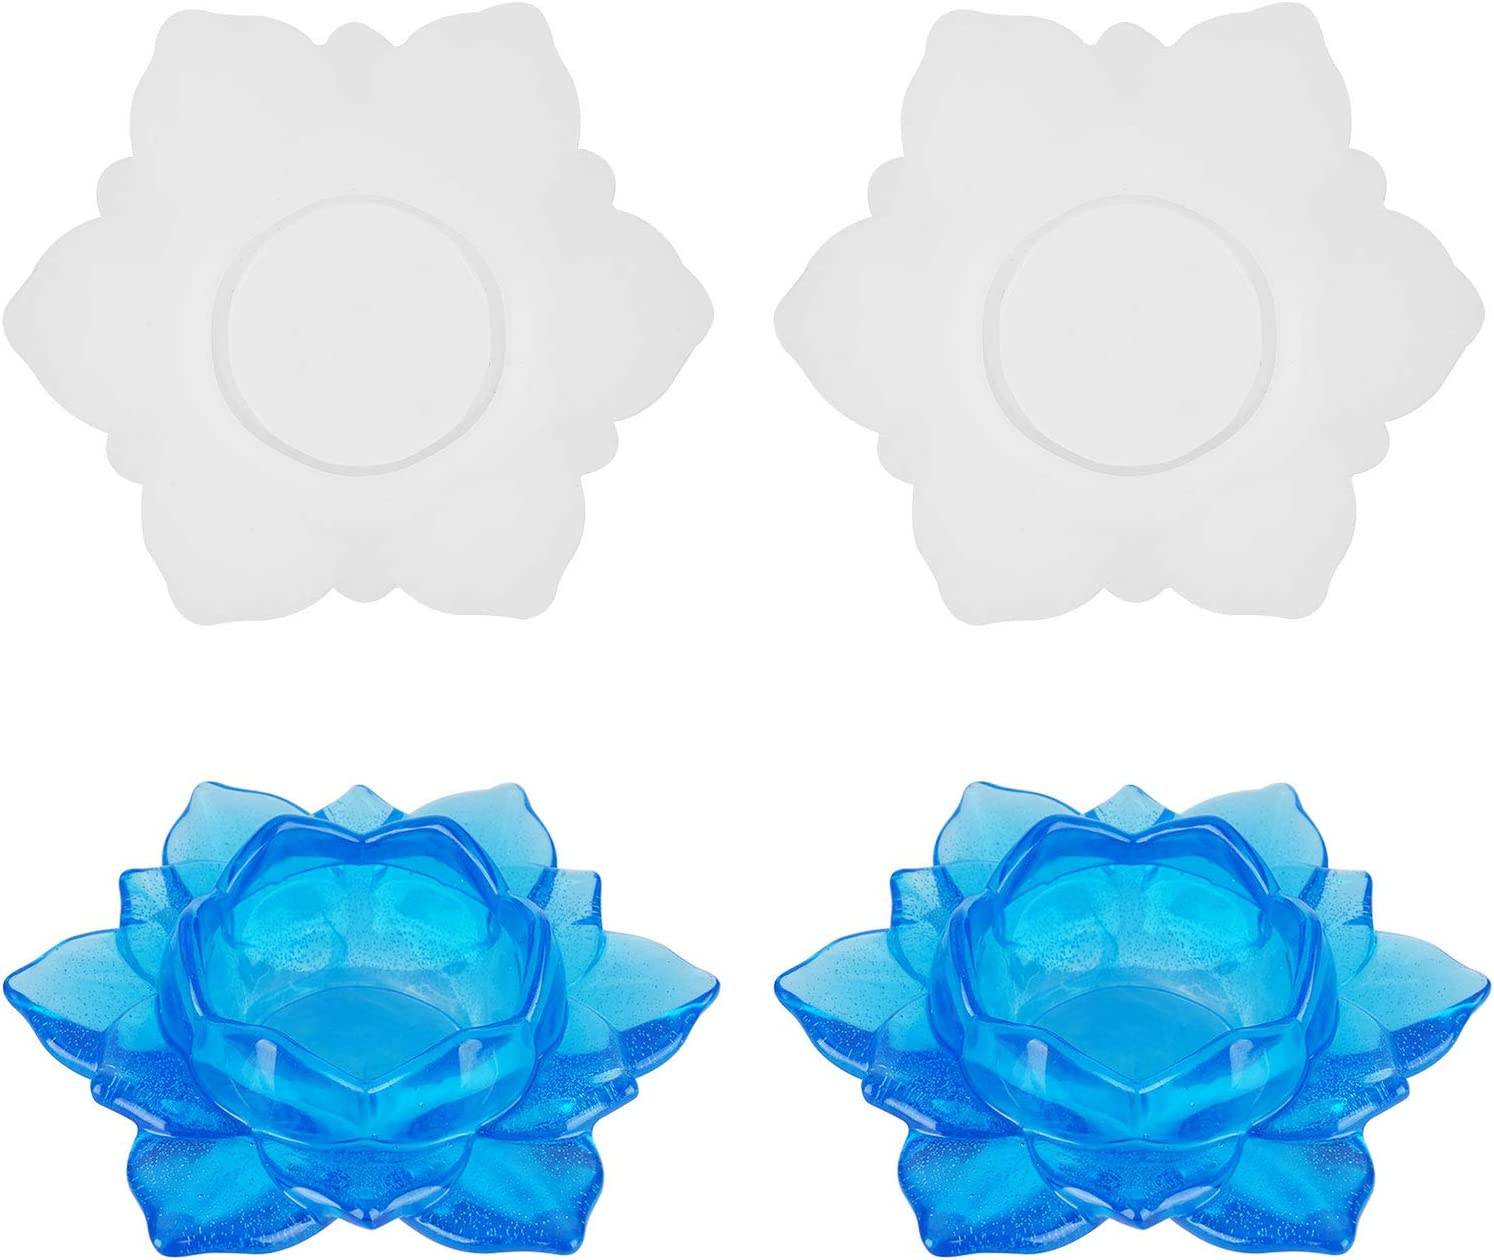 2 Pieces Flower Candlestick Resin Molds, Gartful Box Resin Casting Molds, Resin Container Molds for Making Jewelry Storage Box, Candle Holder, Tray Flower Pot, Home Decor, Crafts Decorations